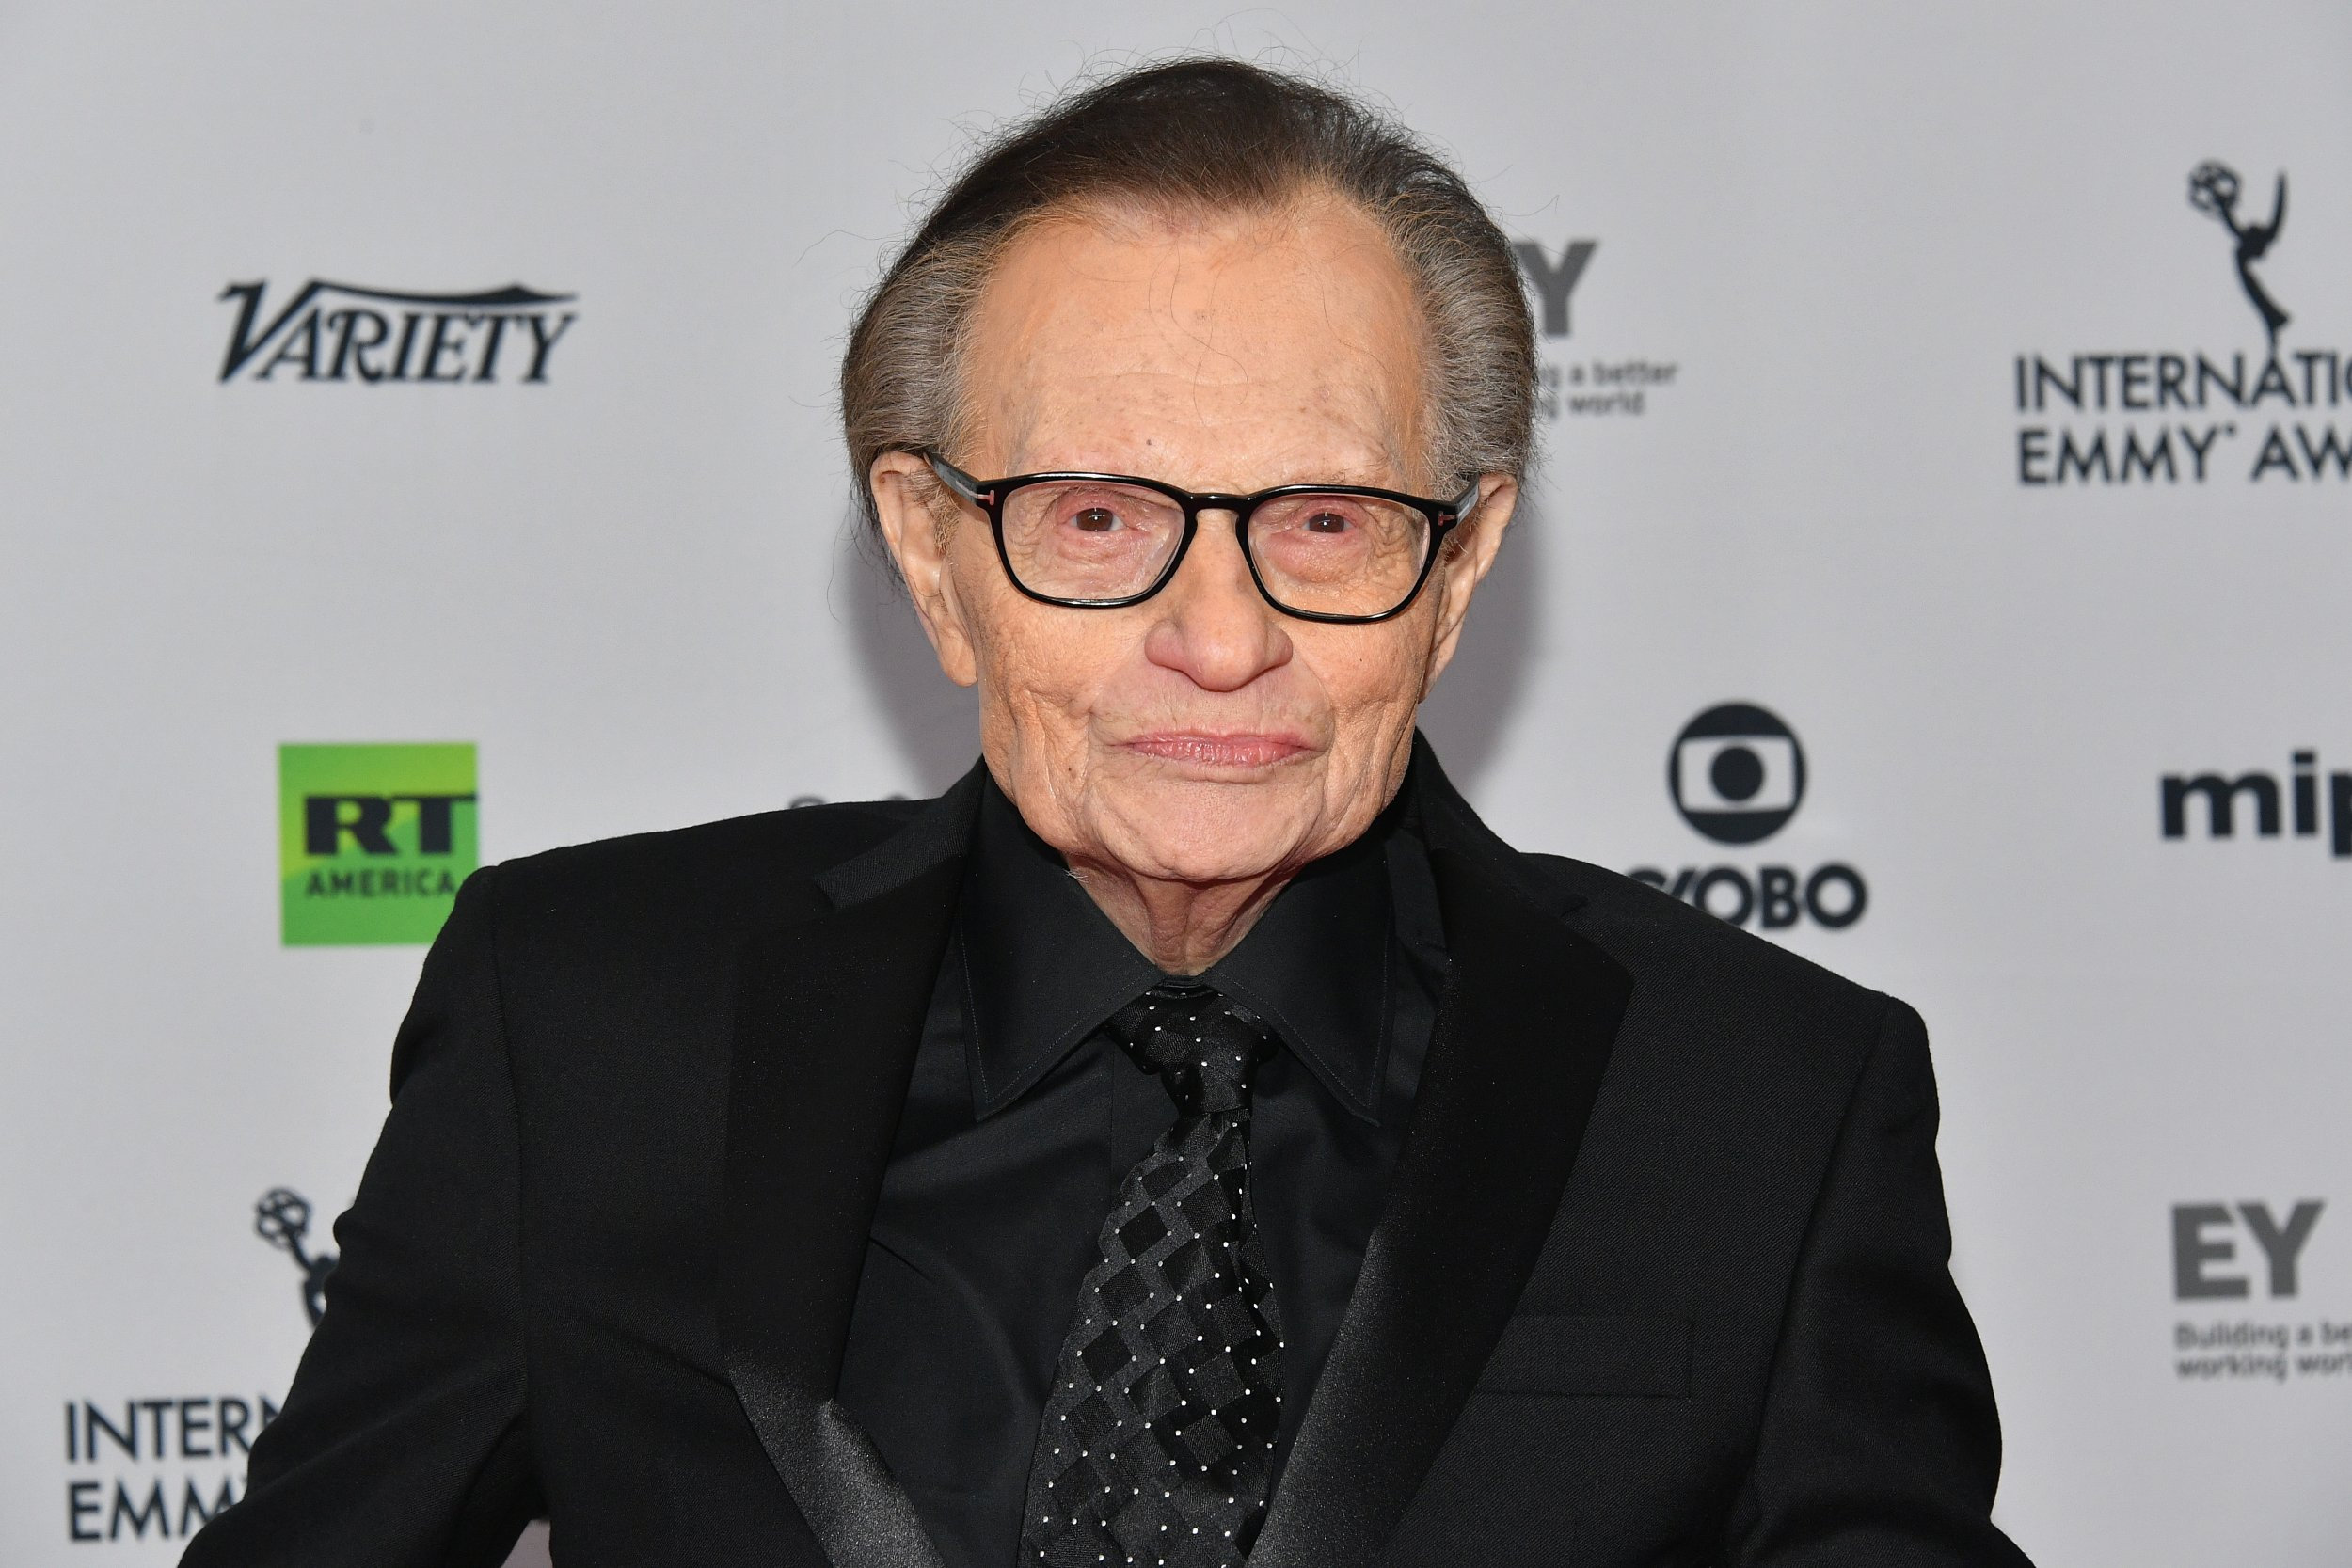 """The best quotes by Larry King: """"I never learned anything while I was talking"""""""